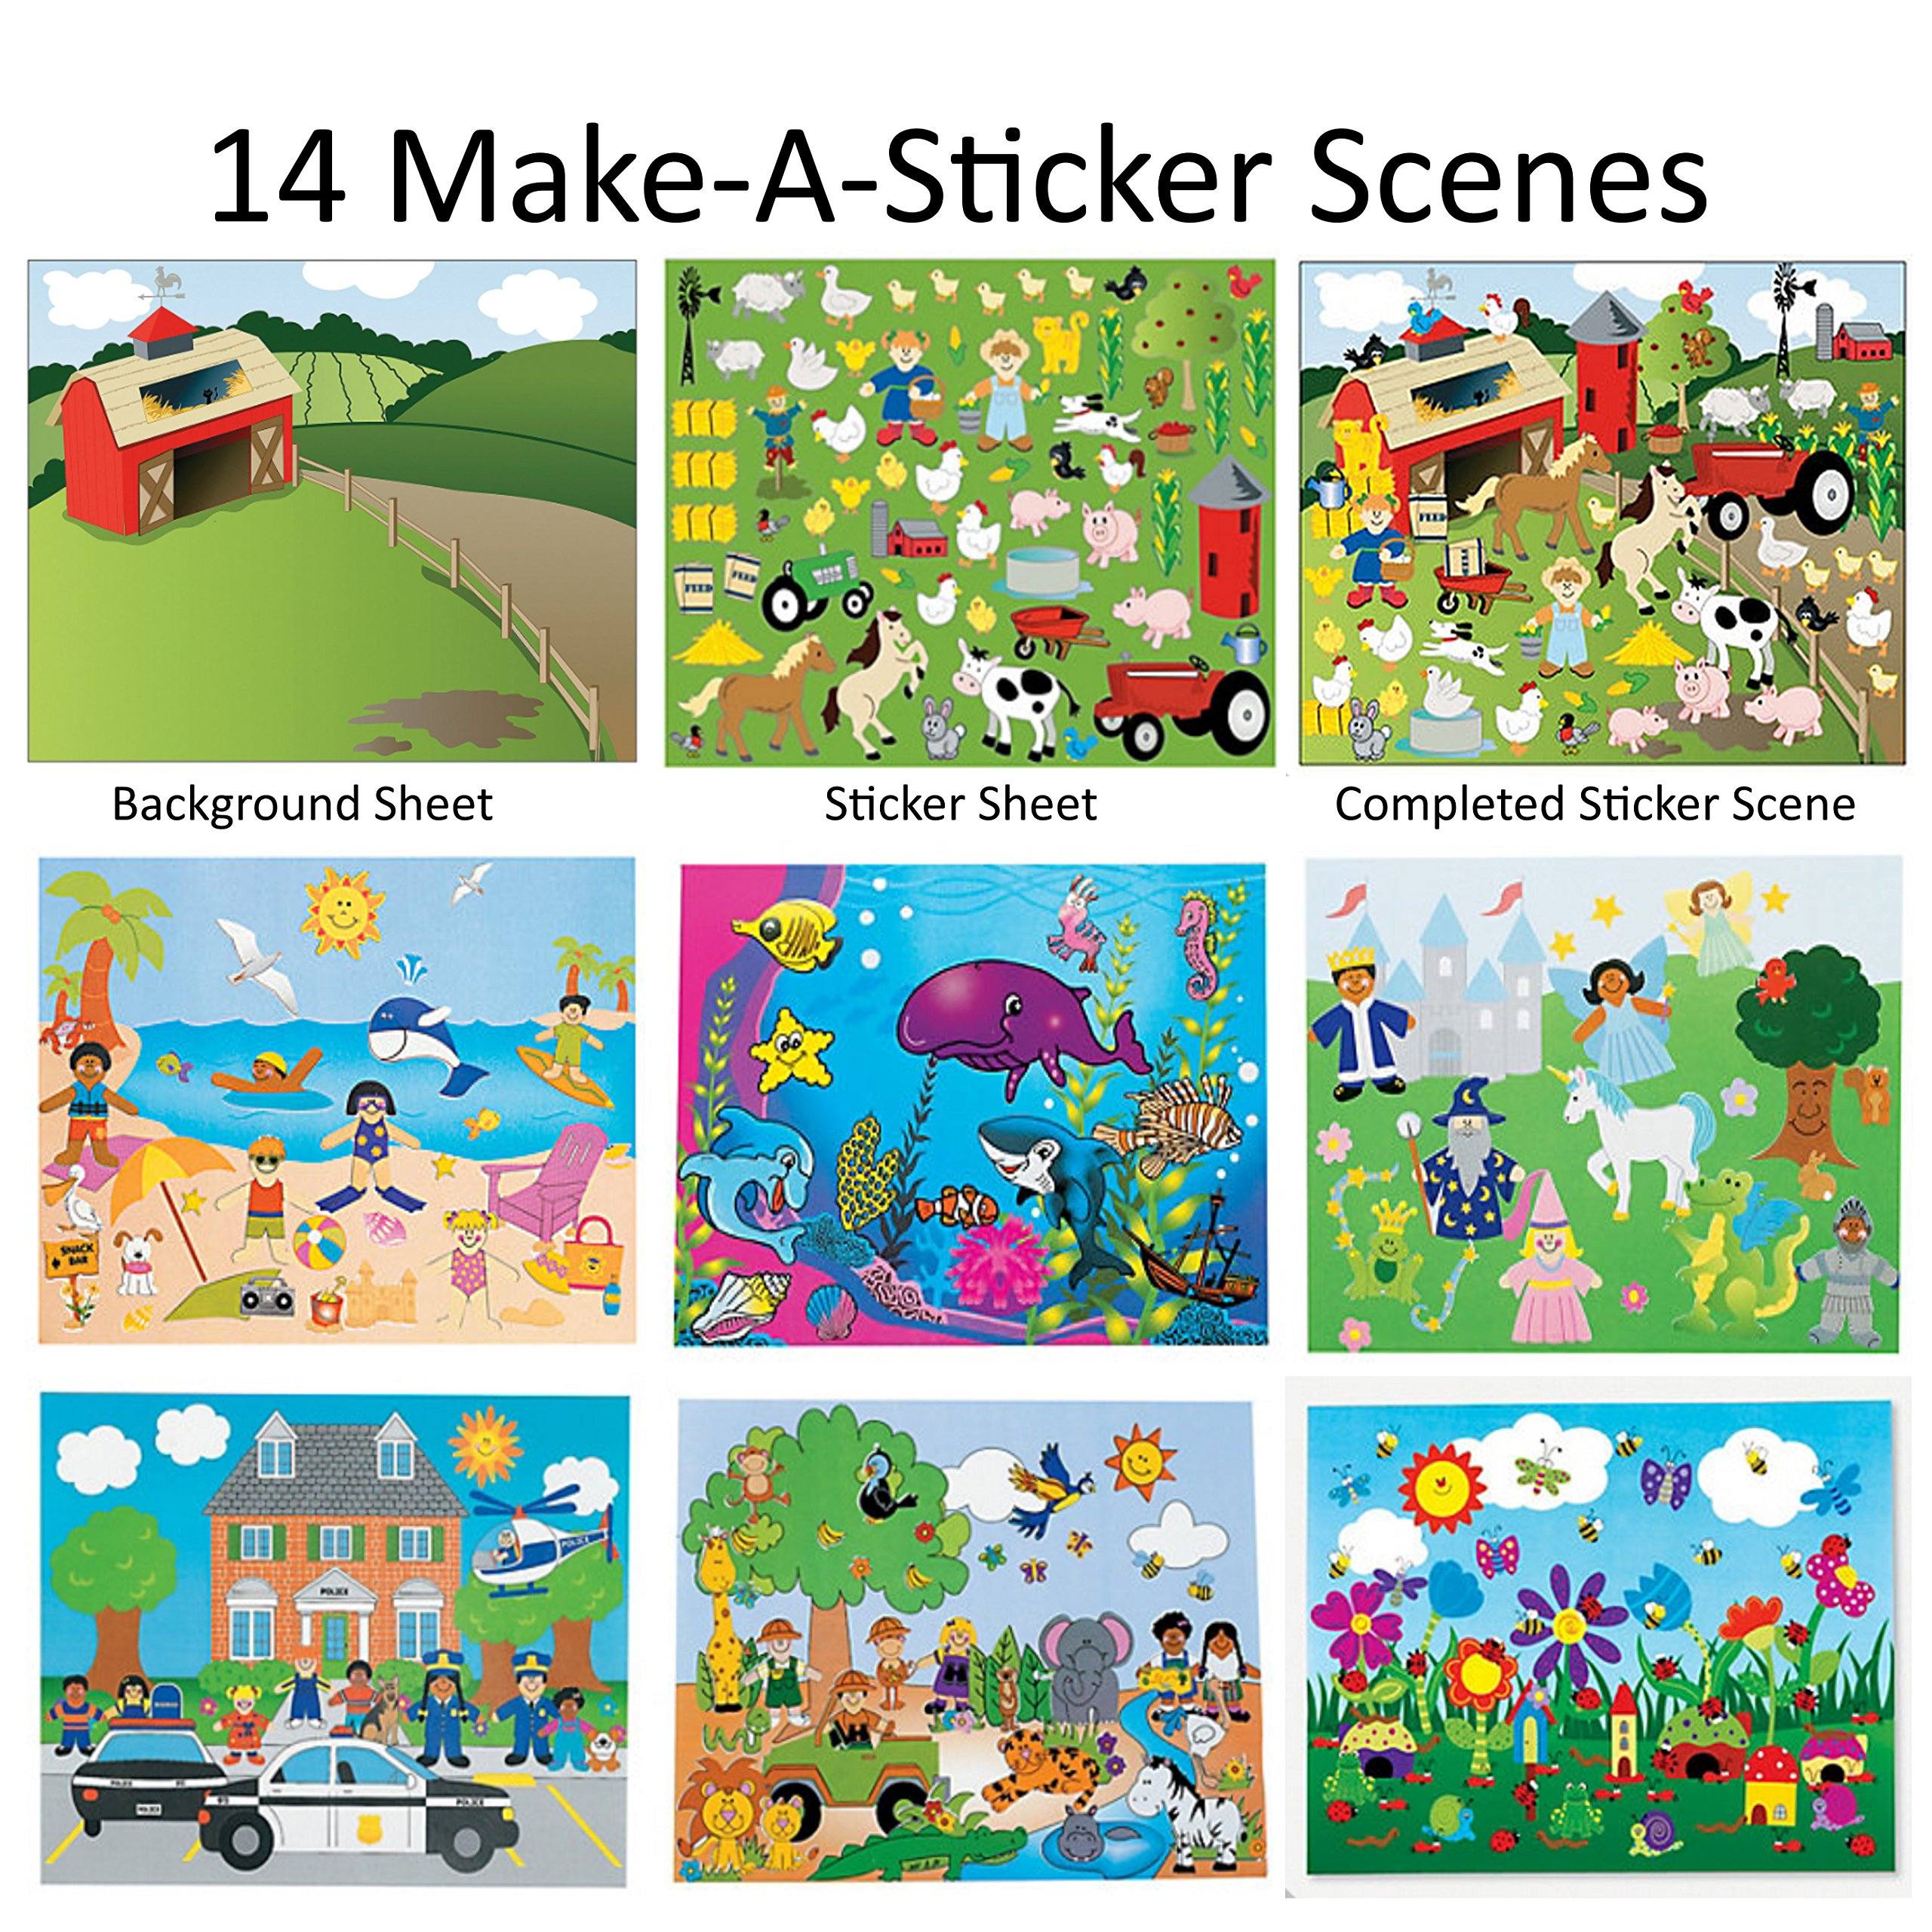 14 Make-A-Sticker Scene Variety Pack (7 different Sticker Scenes, 2 of each kind, size=8.5 x11 inches)